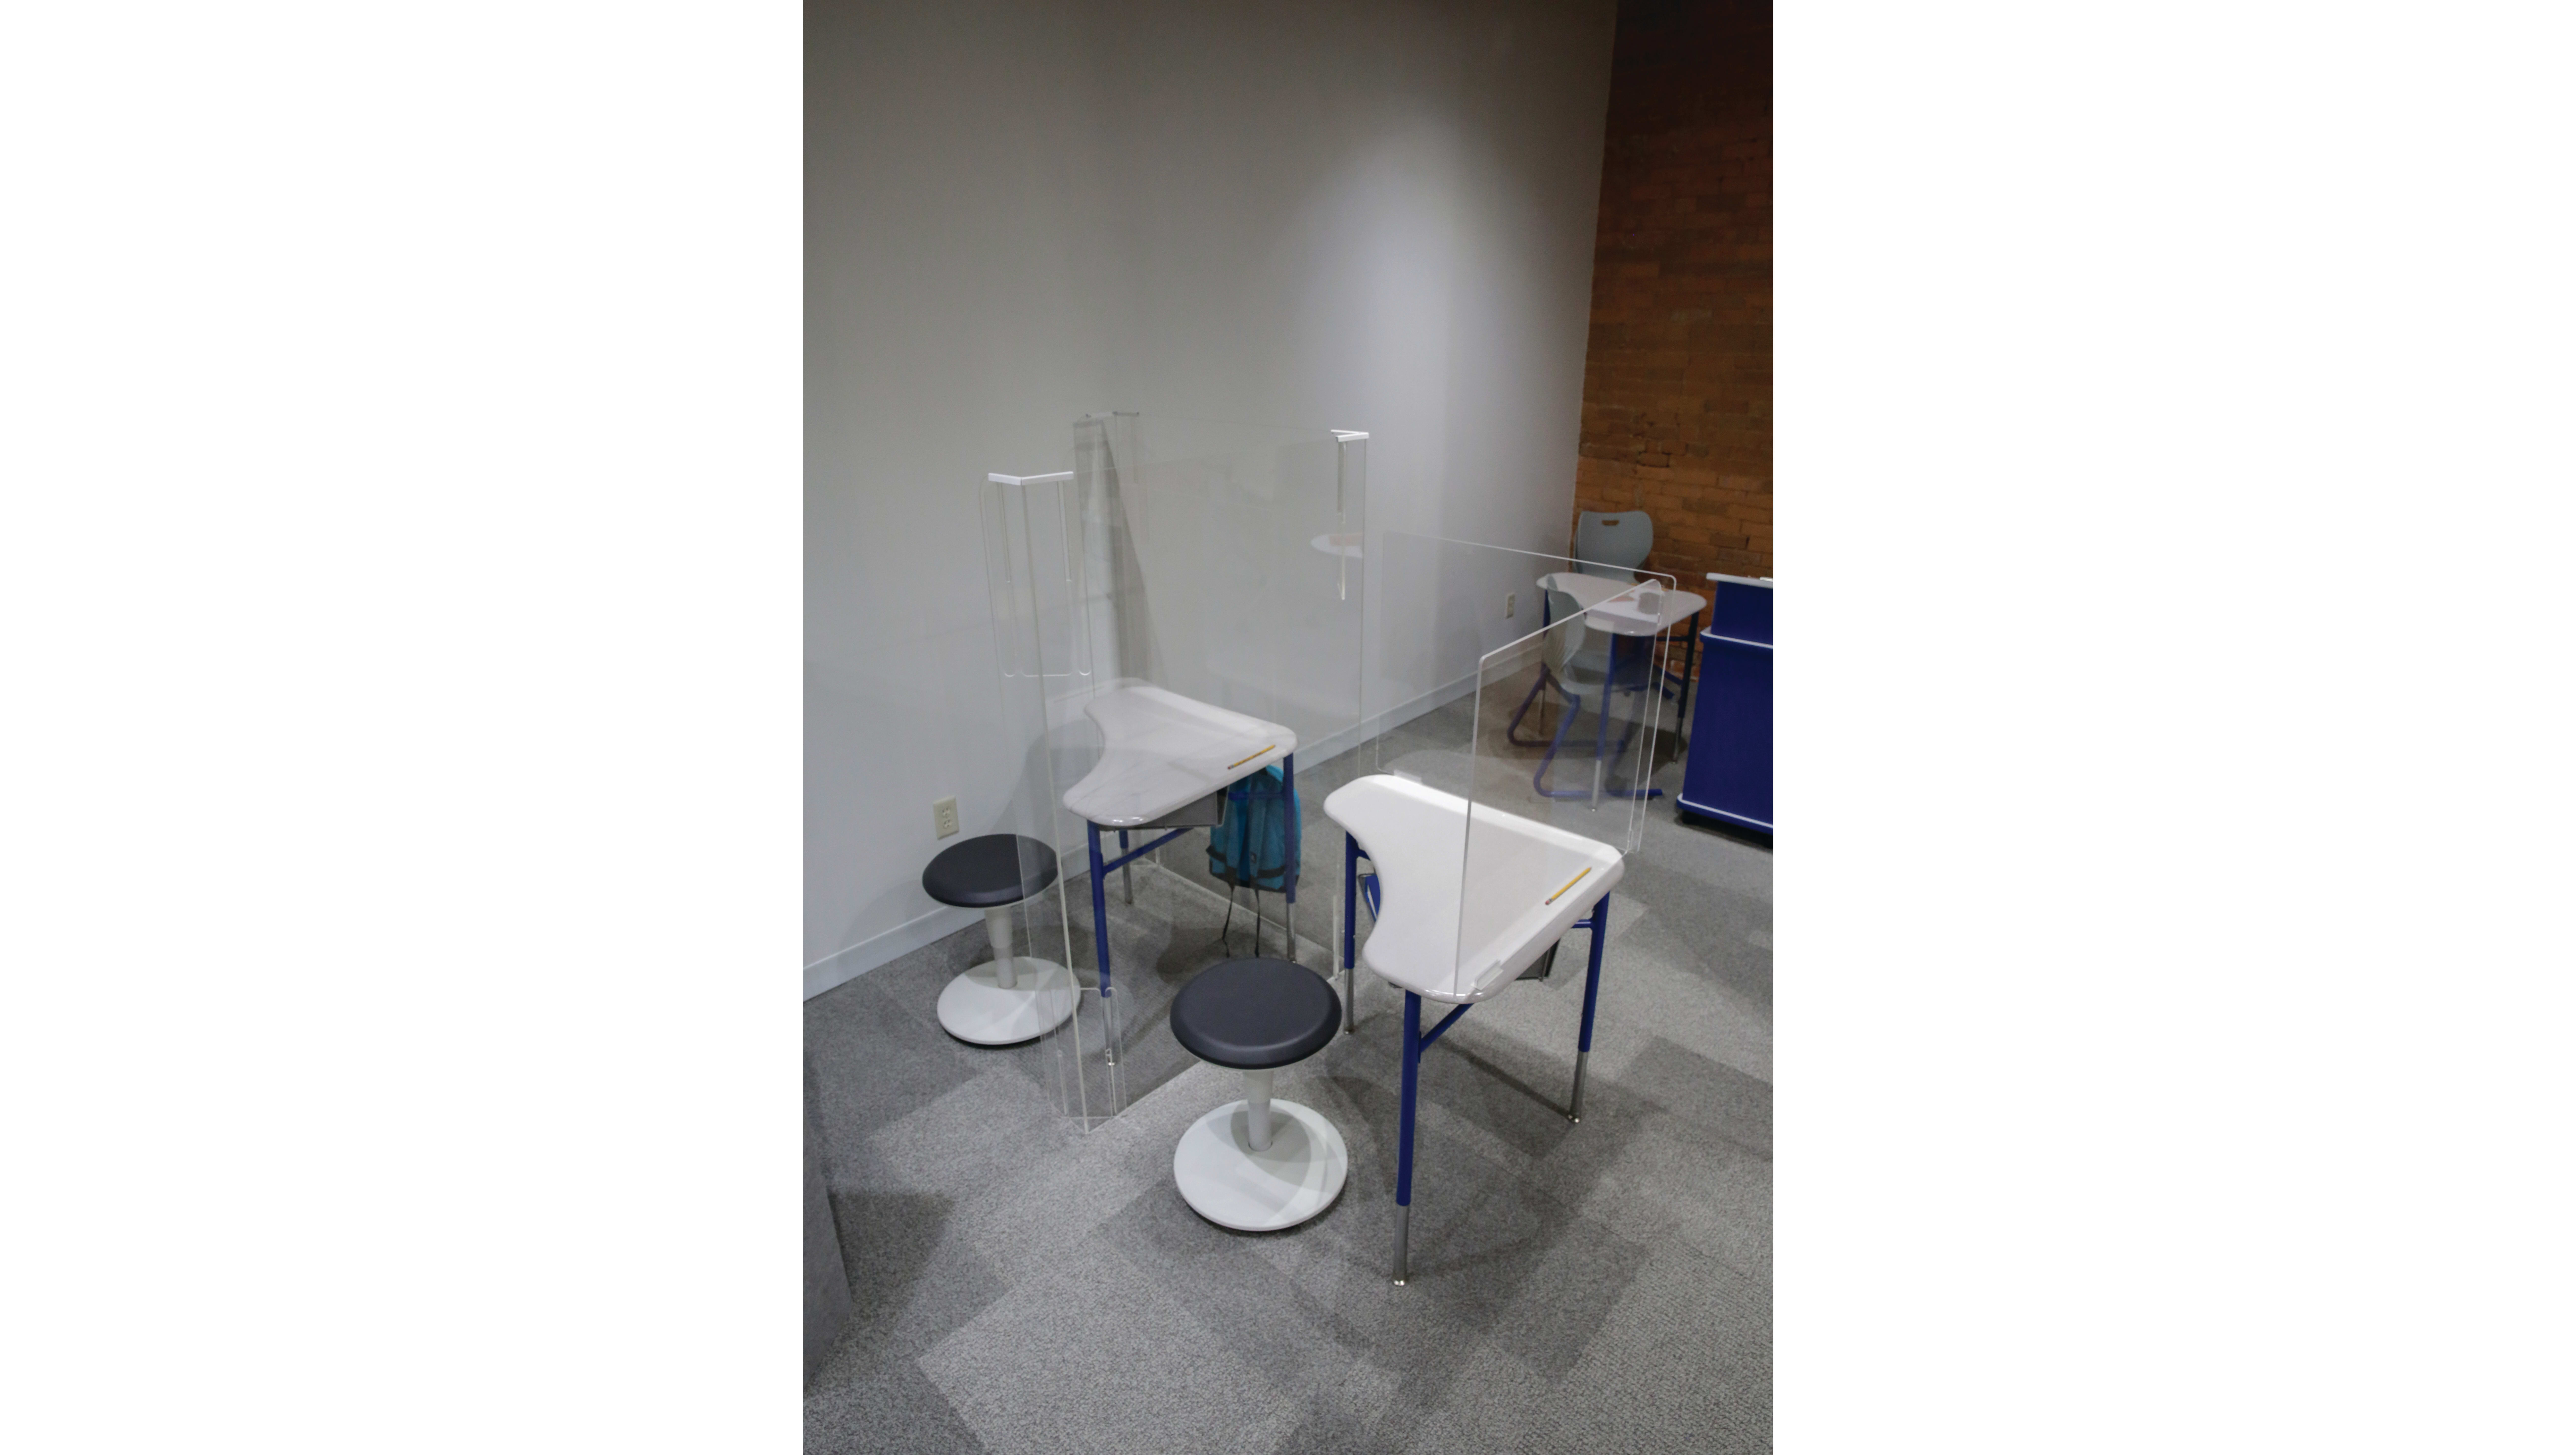 Revel Chair with SmartLink Desk and Acrylic Desktop L-Screen and Acrylic Freestanding Screen